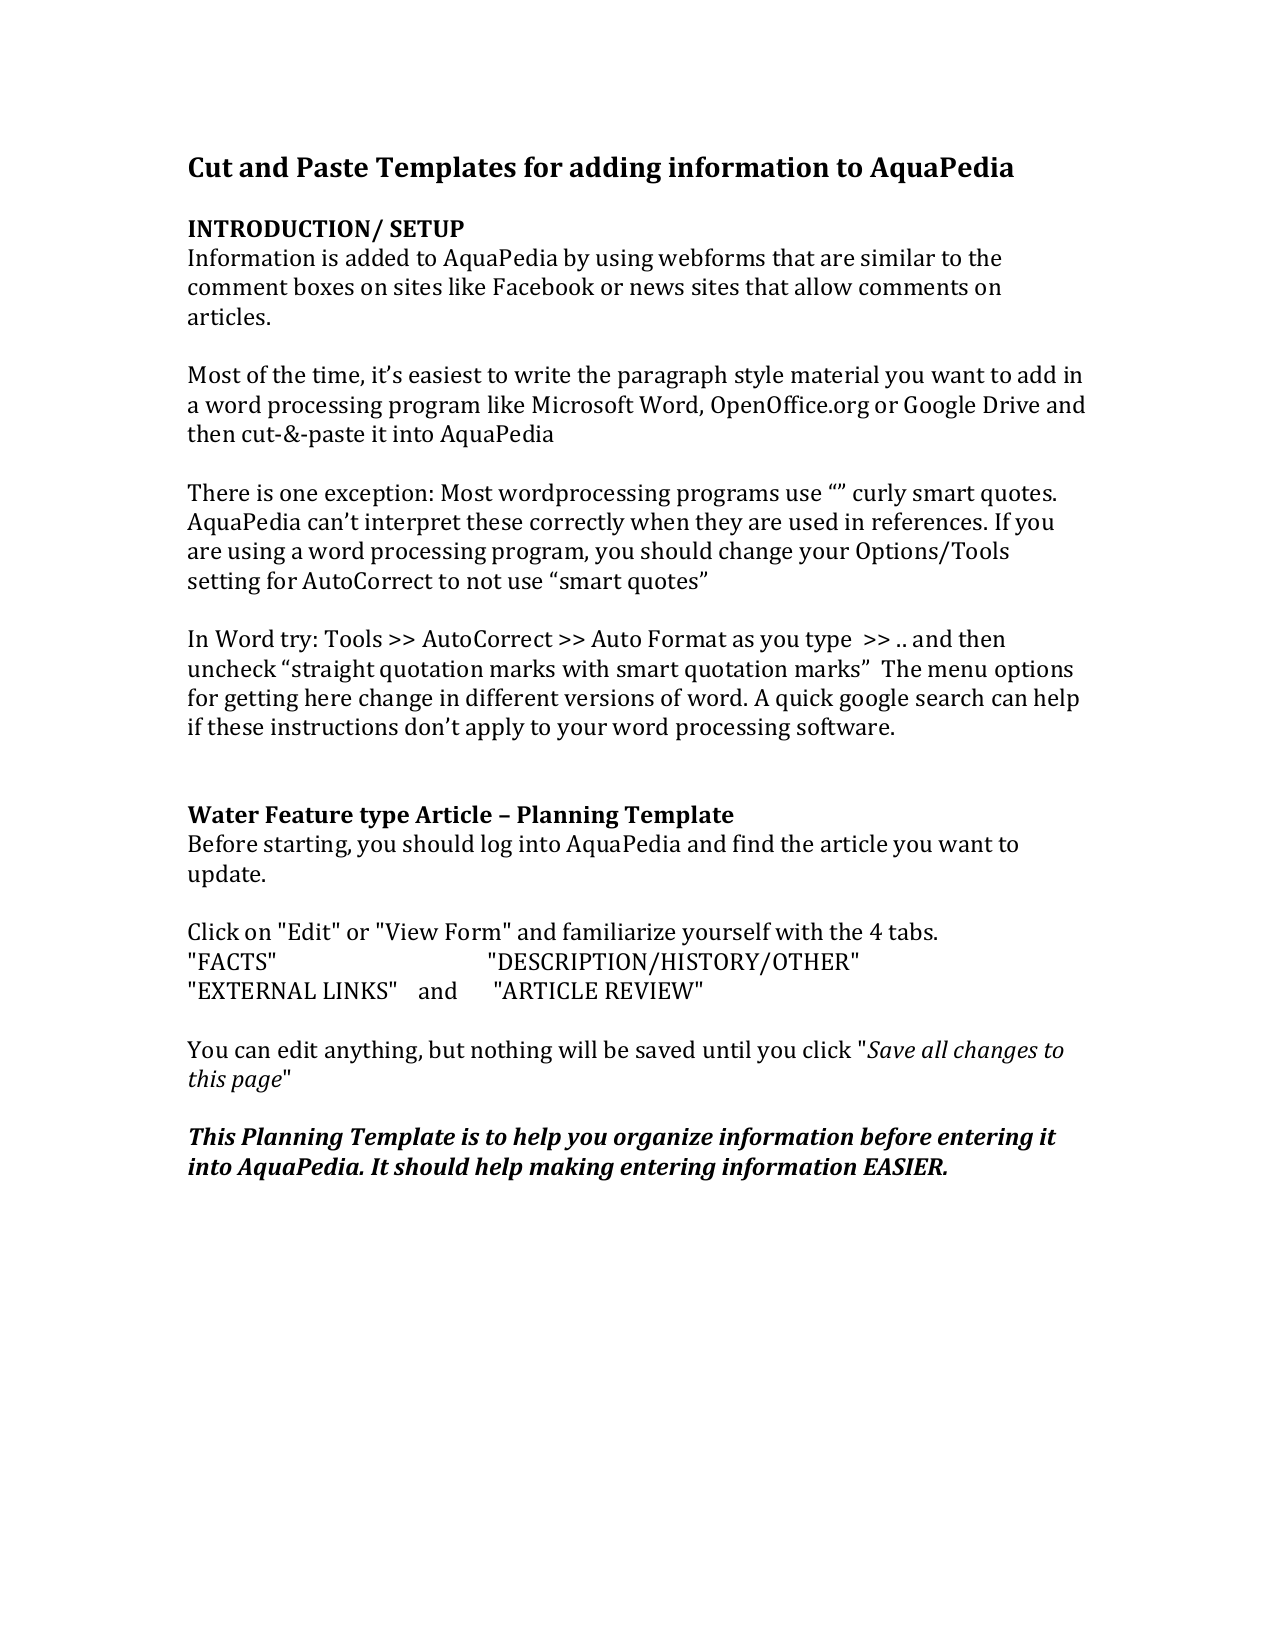 Water Project Article Information Prep Template